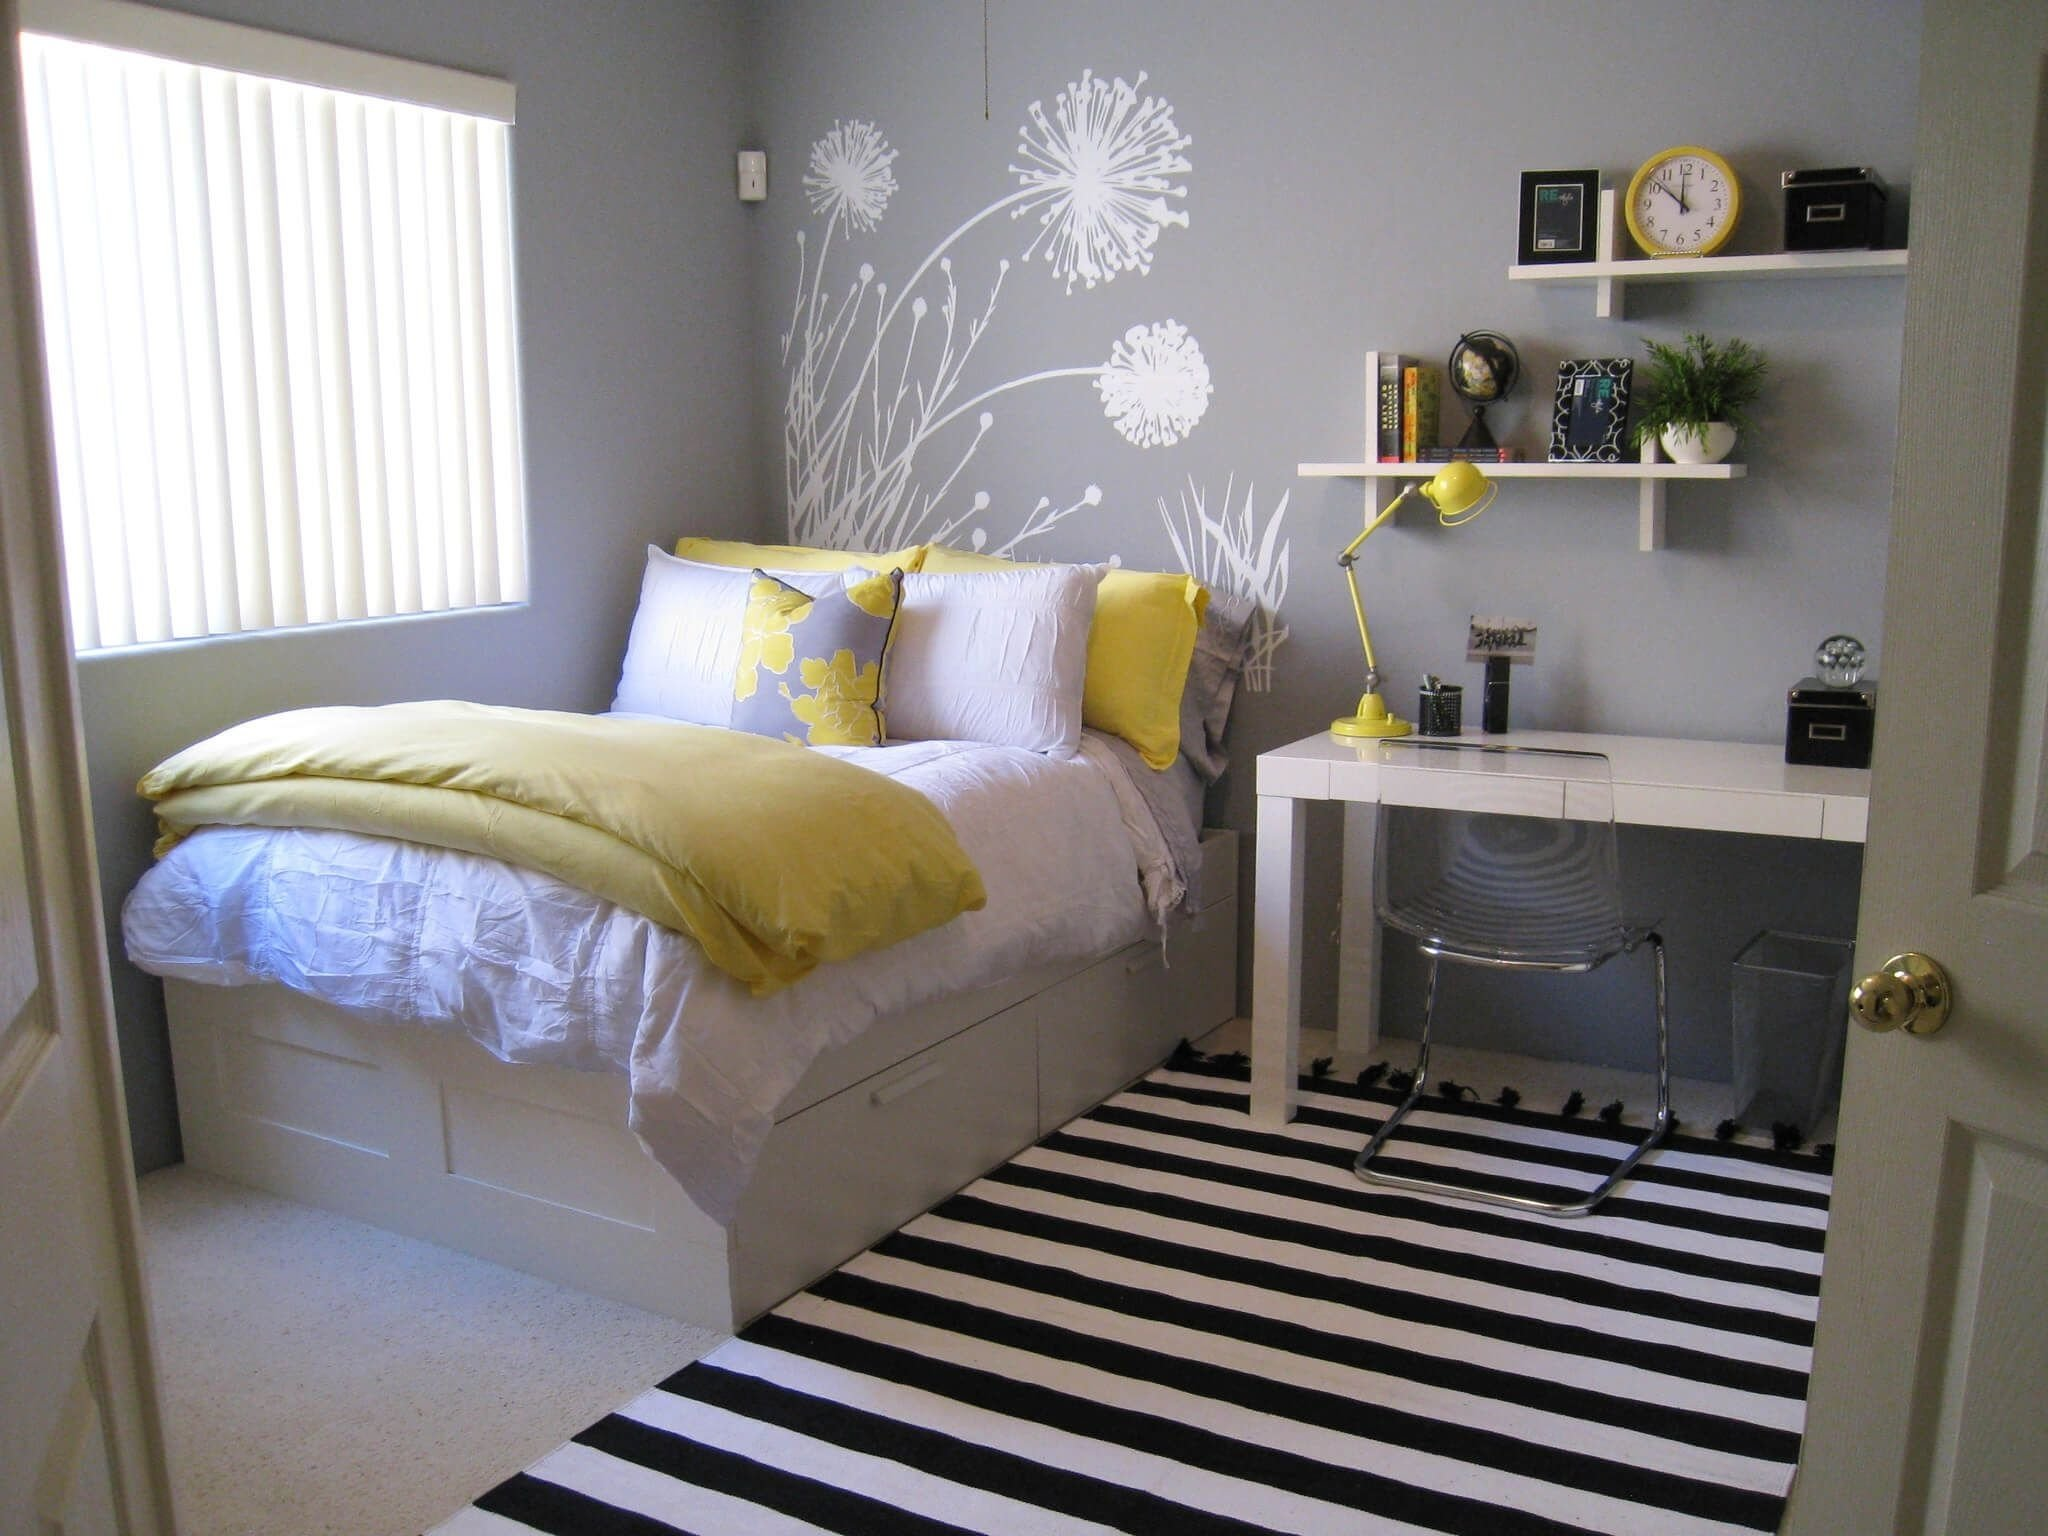 10 Elegant Cute Bedroom Ideas For Small Rooms 45 inspiring small bedrooms pinteres 1